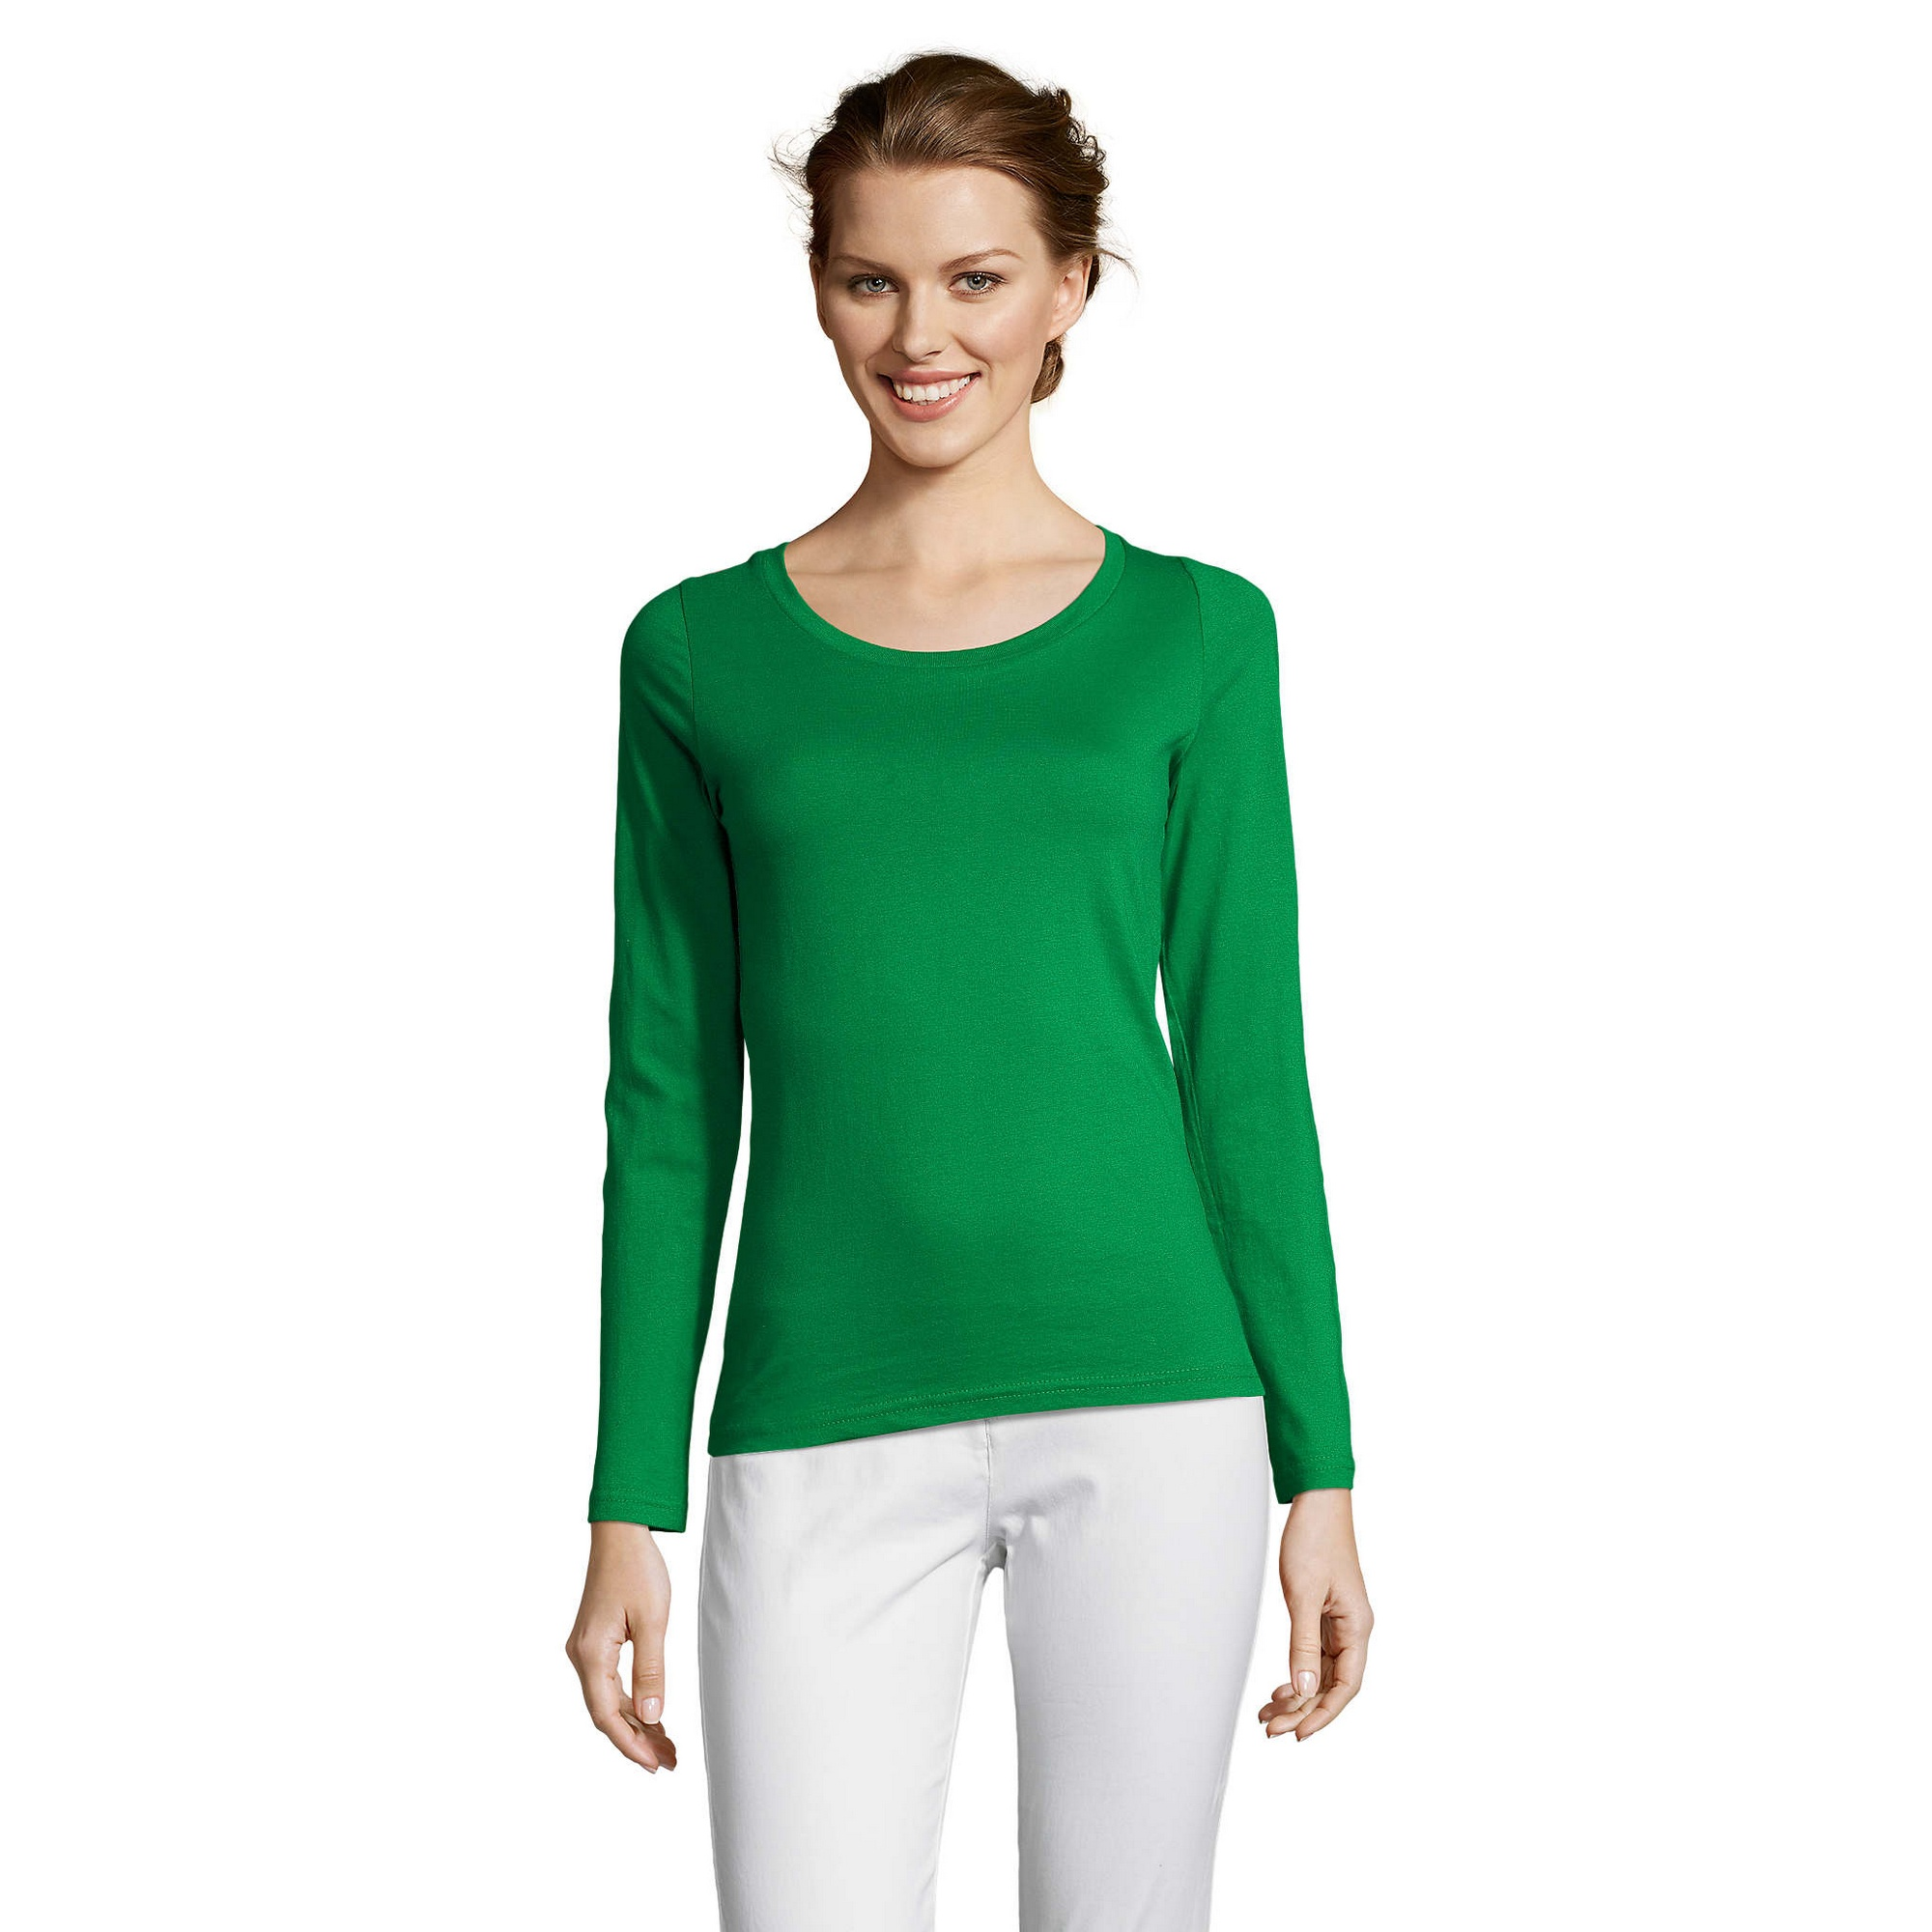 SOLS-Womens-Ladies-Majestic-Long-Sleeve-Coloured-Cotton-T-Shirt-PC314 miniatura 20